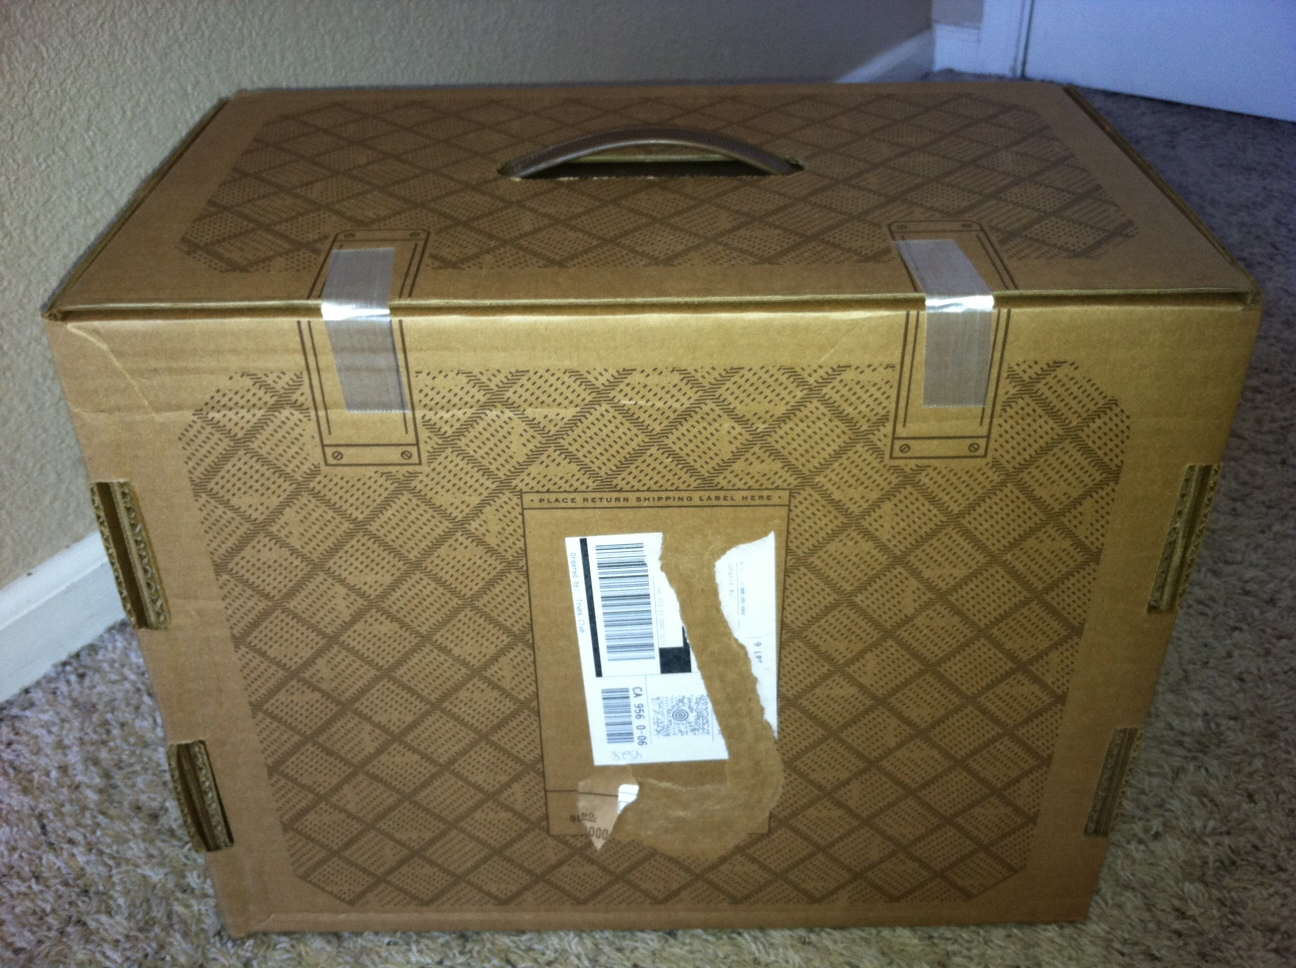 Nully Baby Blog: Trunk Club Review #1